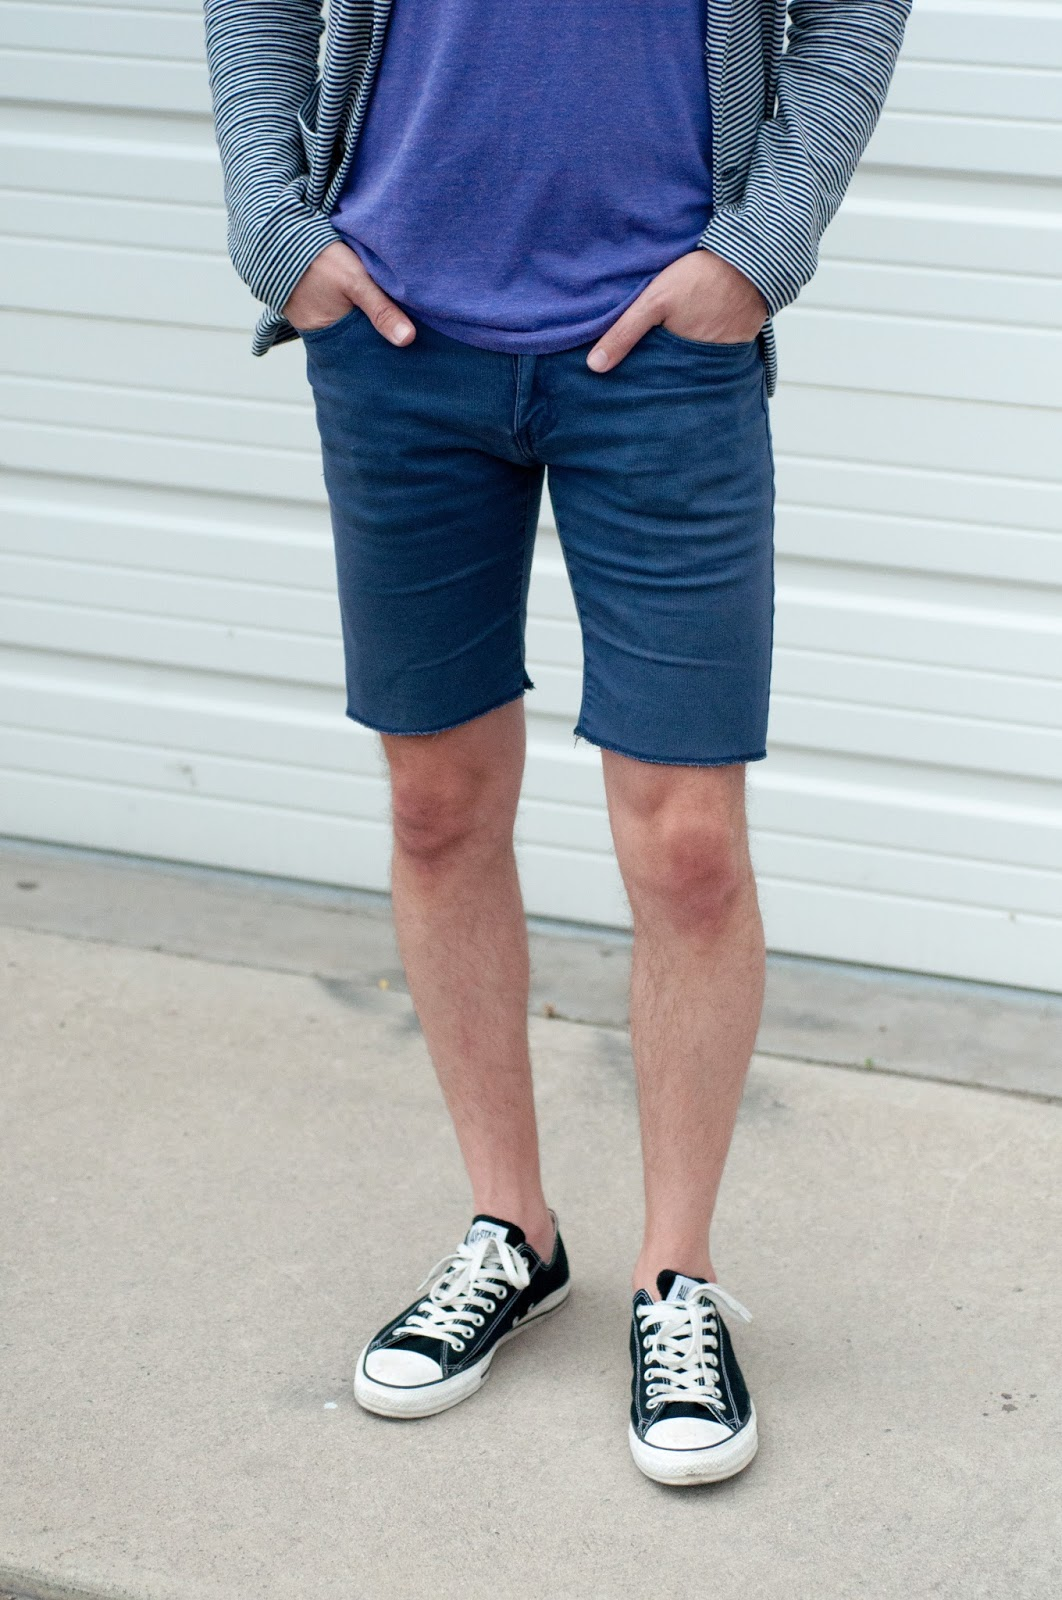 ootd, mens style, mens fashion, what i wore, converse, converse chucks, css